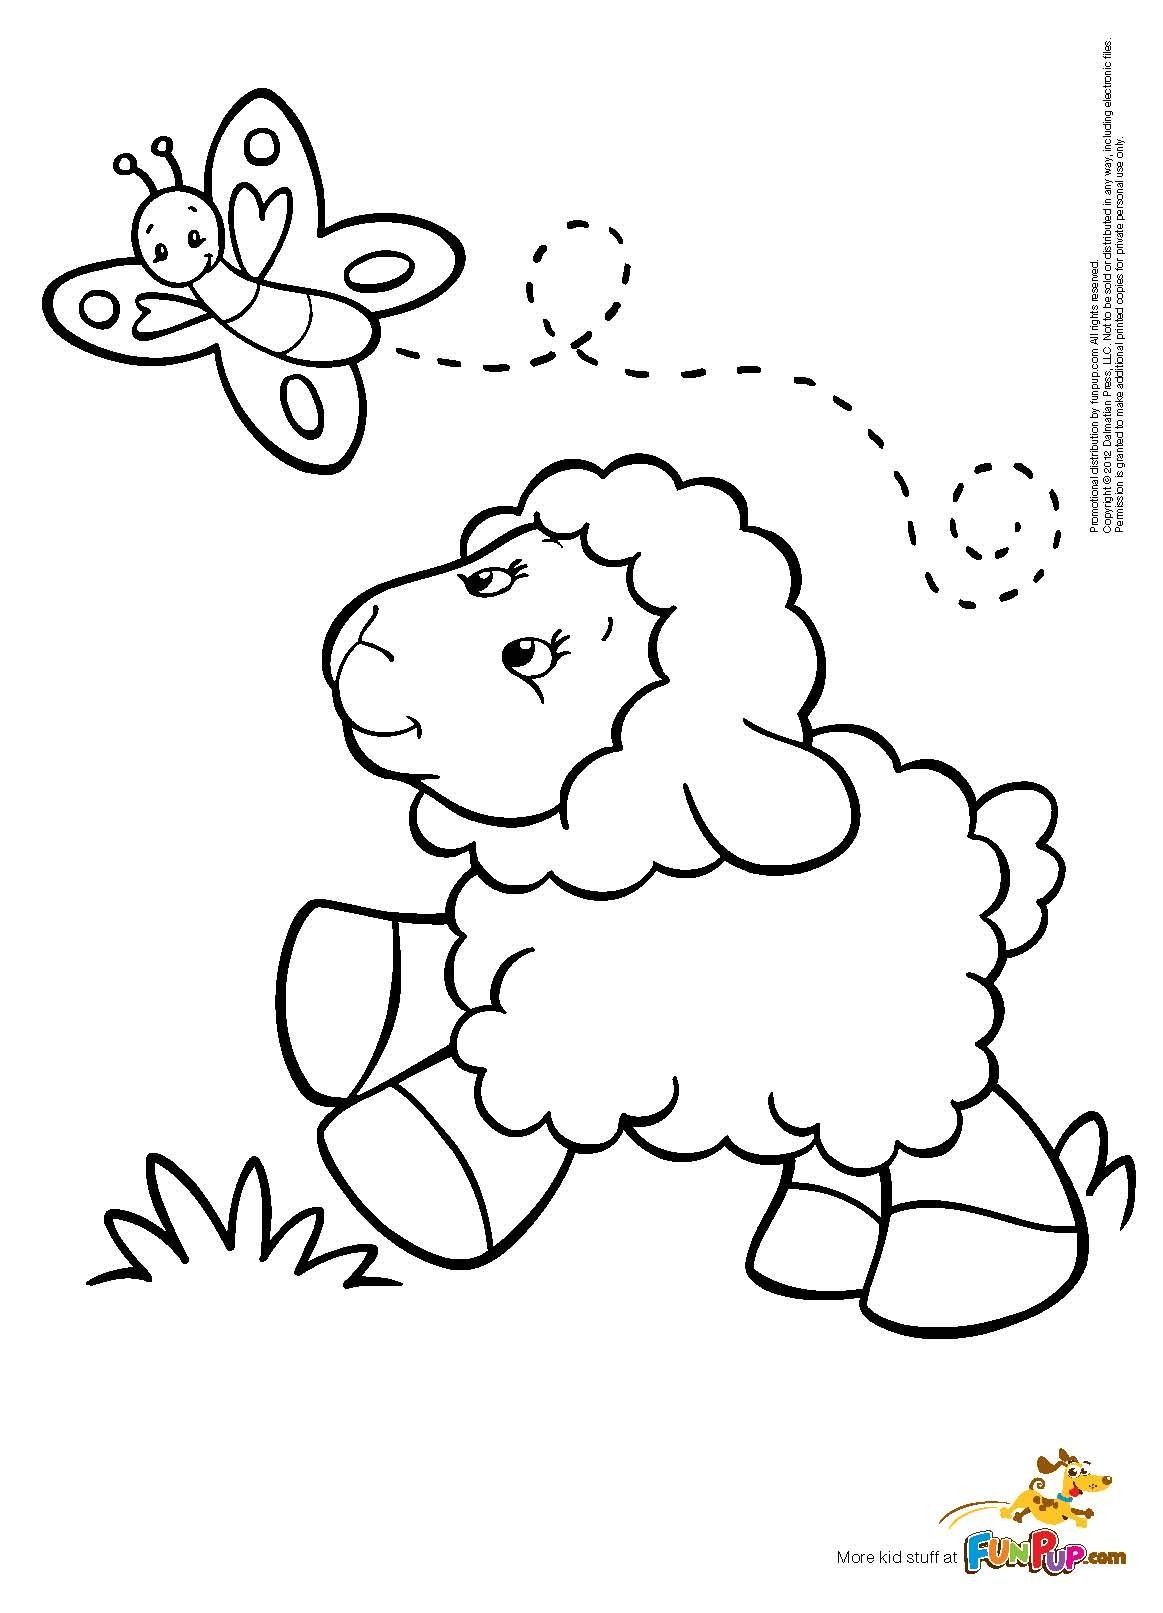 march coloring book pages - photo#35